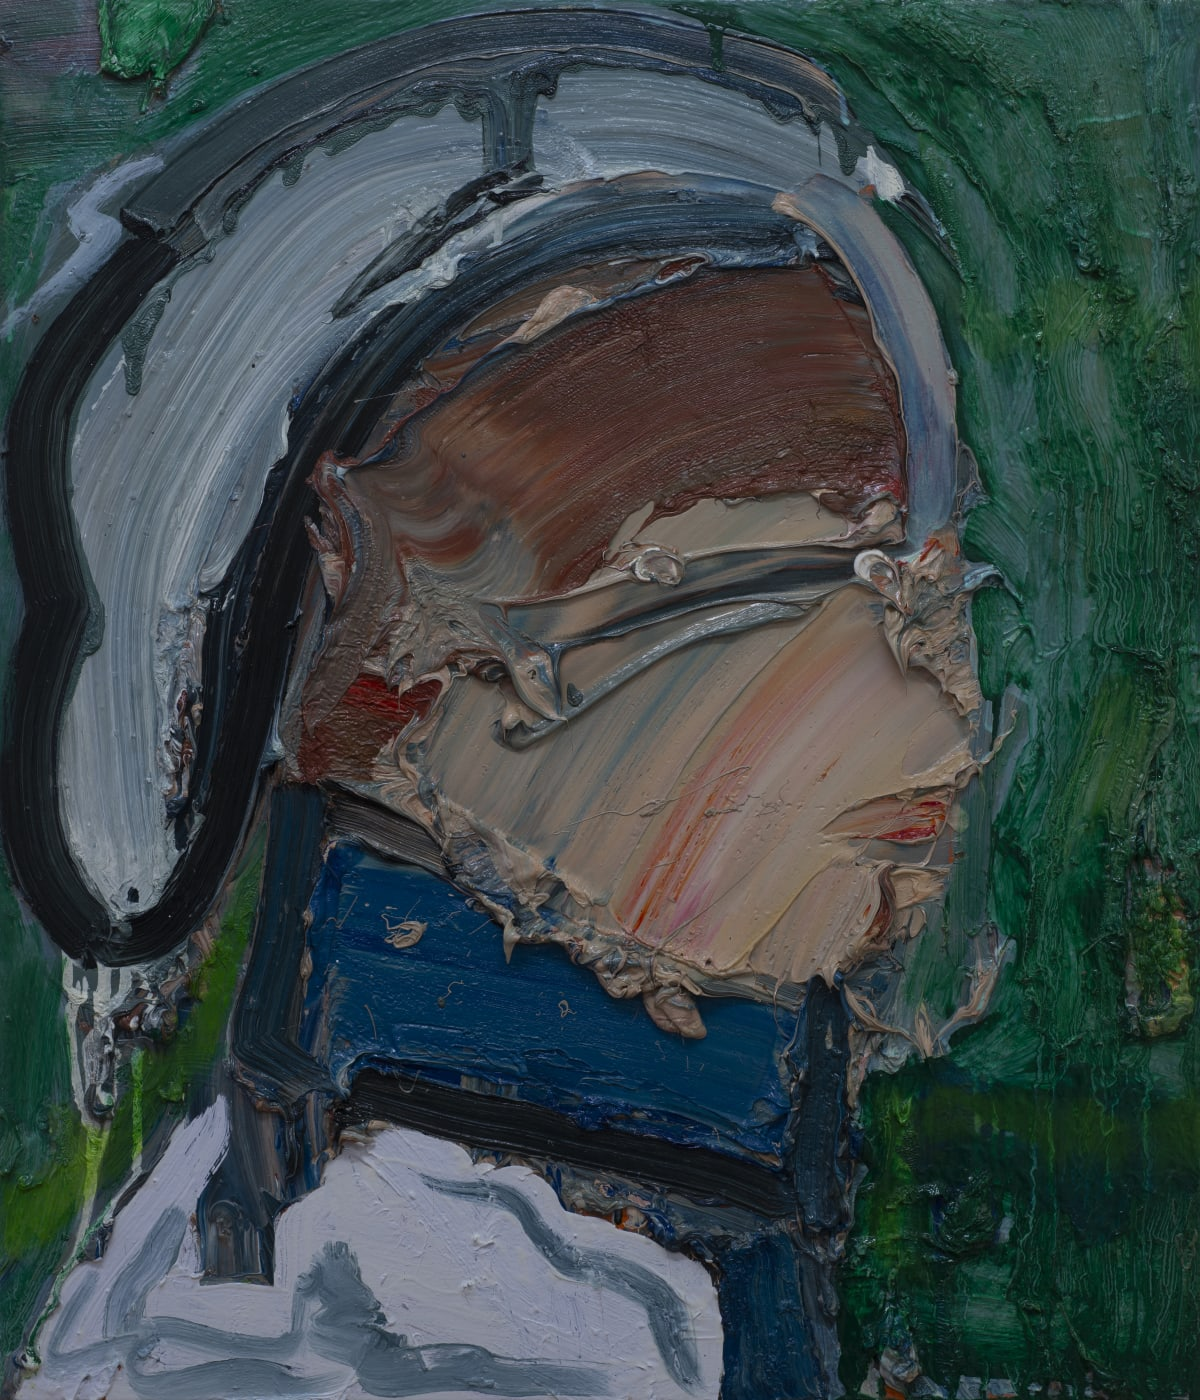 Toby Raine Chris MacNeil Secretly Listening to Priest's Confessions (Ellen Burstyn - 'The Exorcist'), 2019 Oil on canvas 700 x 600mm